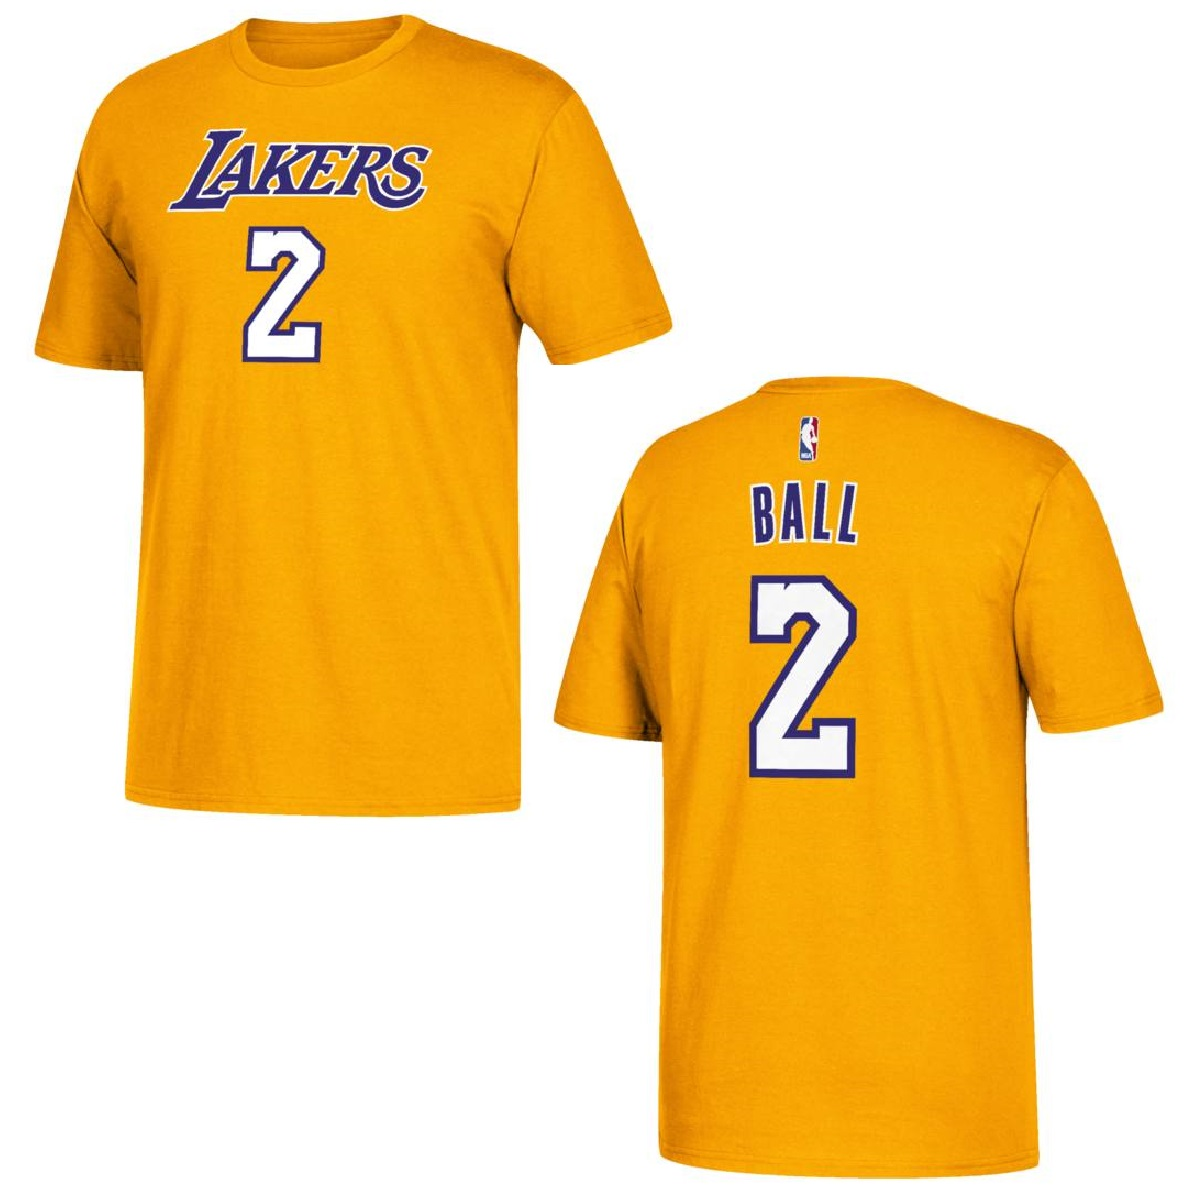 Los Angeles Lakers Lonzo Ball Yellow Gold Name and Number T-Shirt